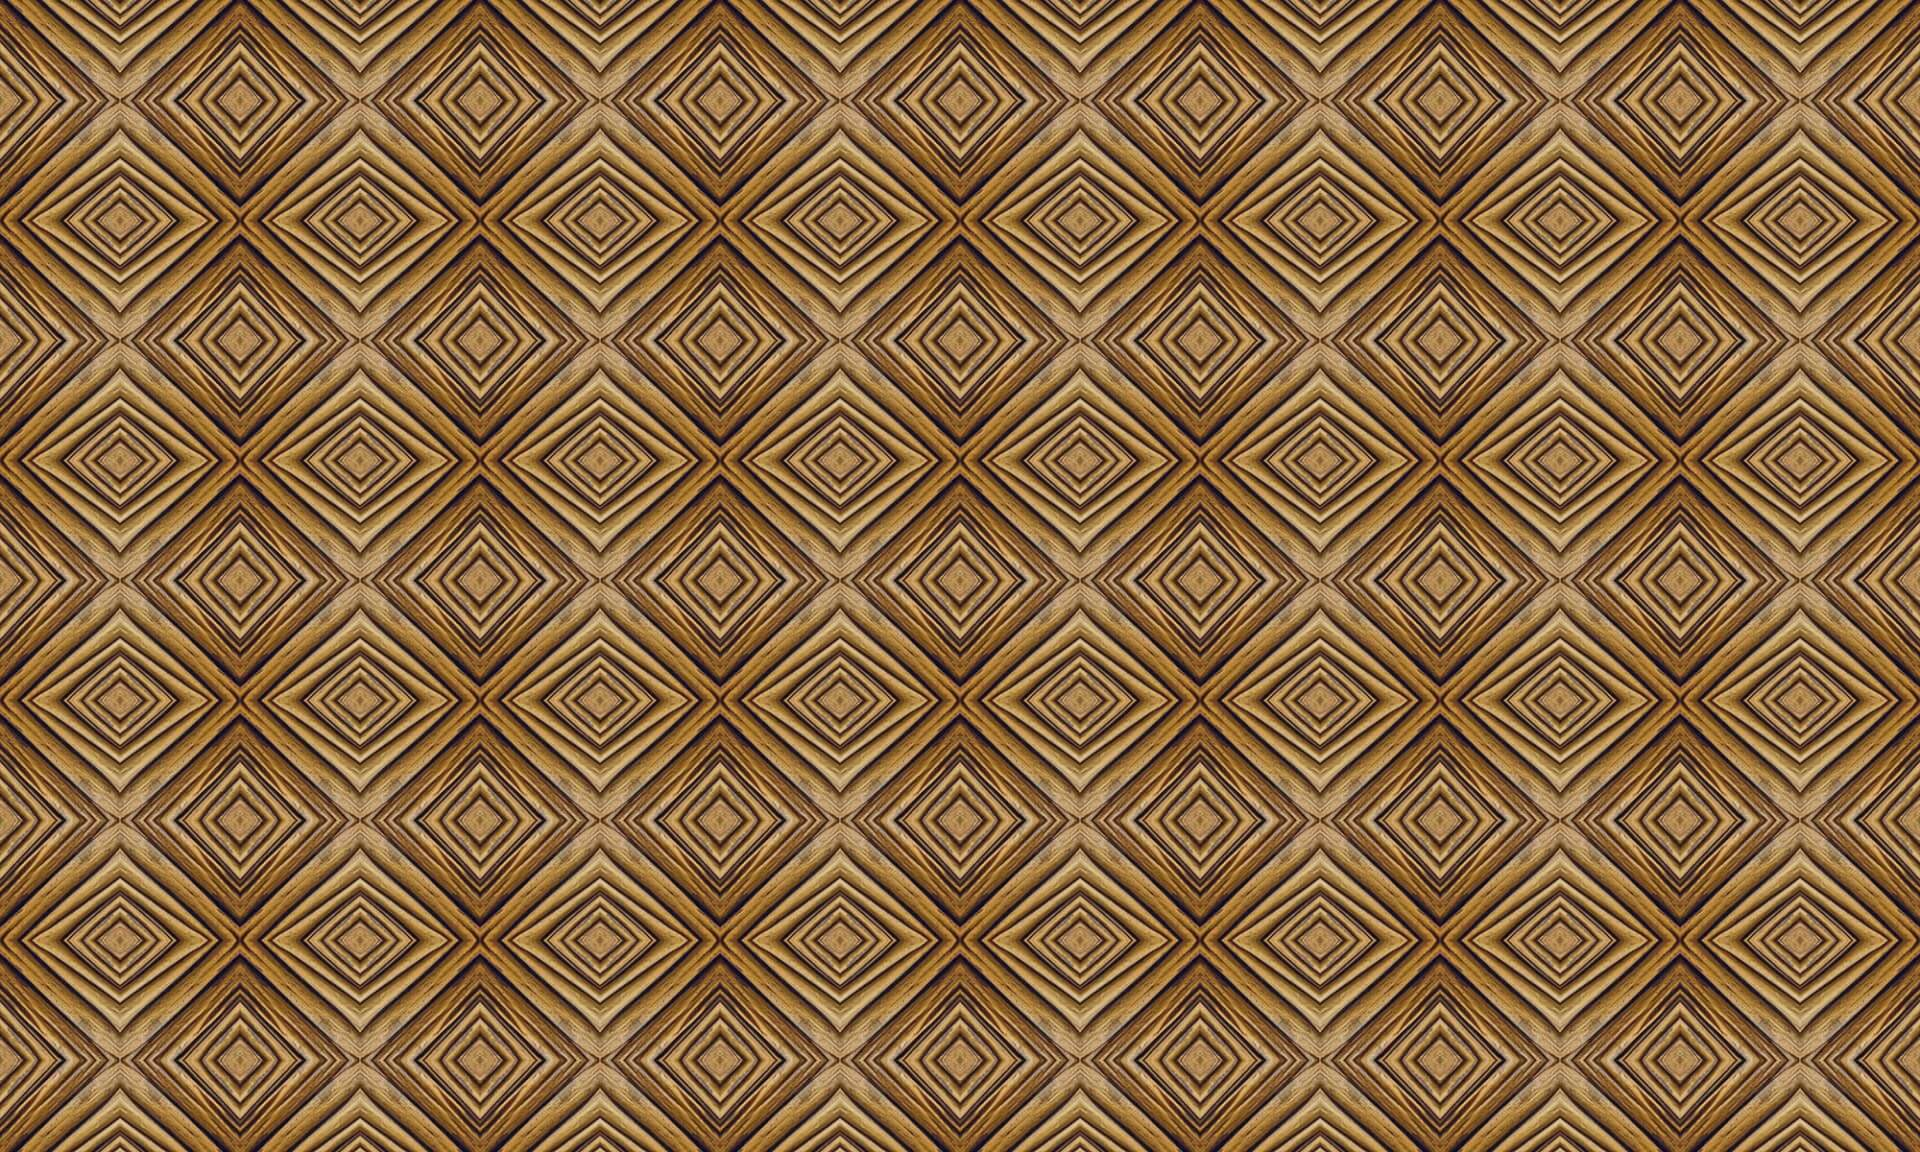 Wacky Wood Paneling (DE0594)-Diamond Doug Garrabrants